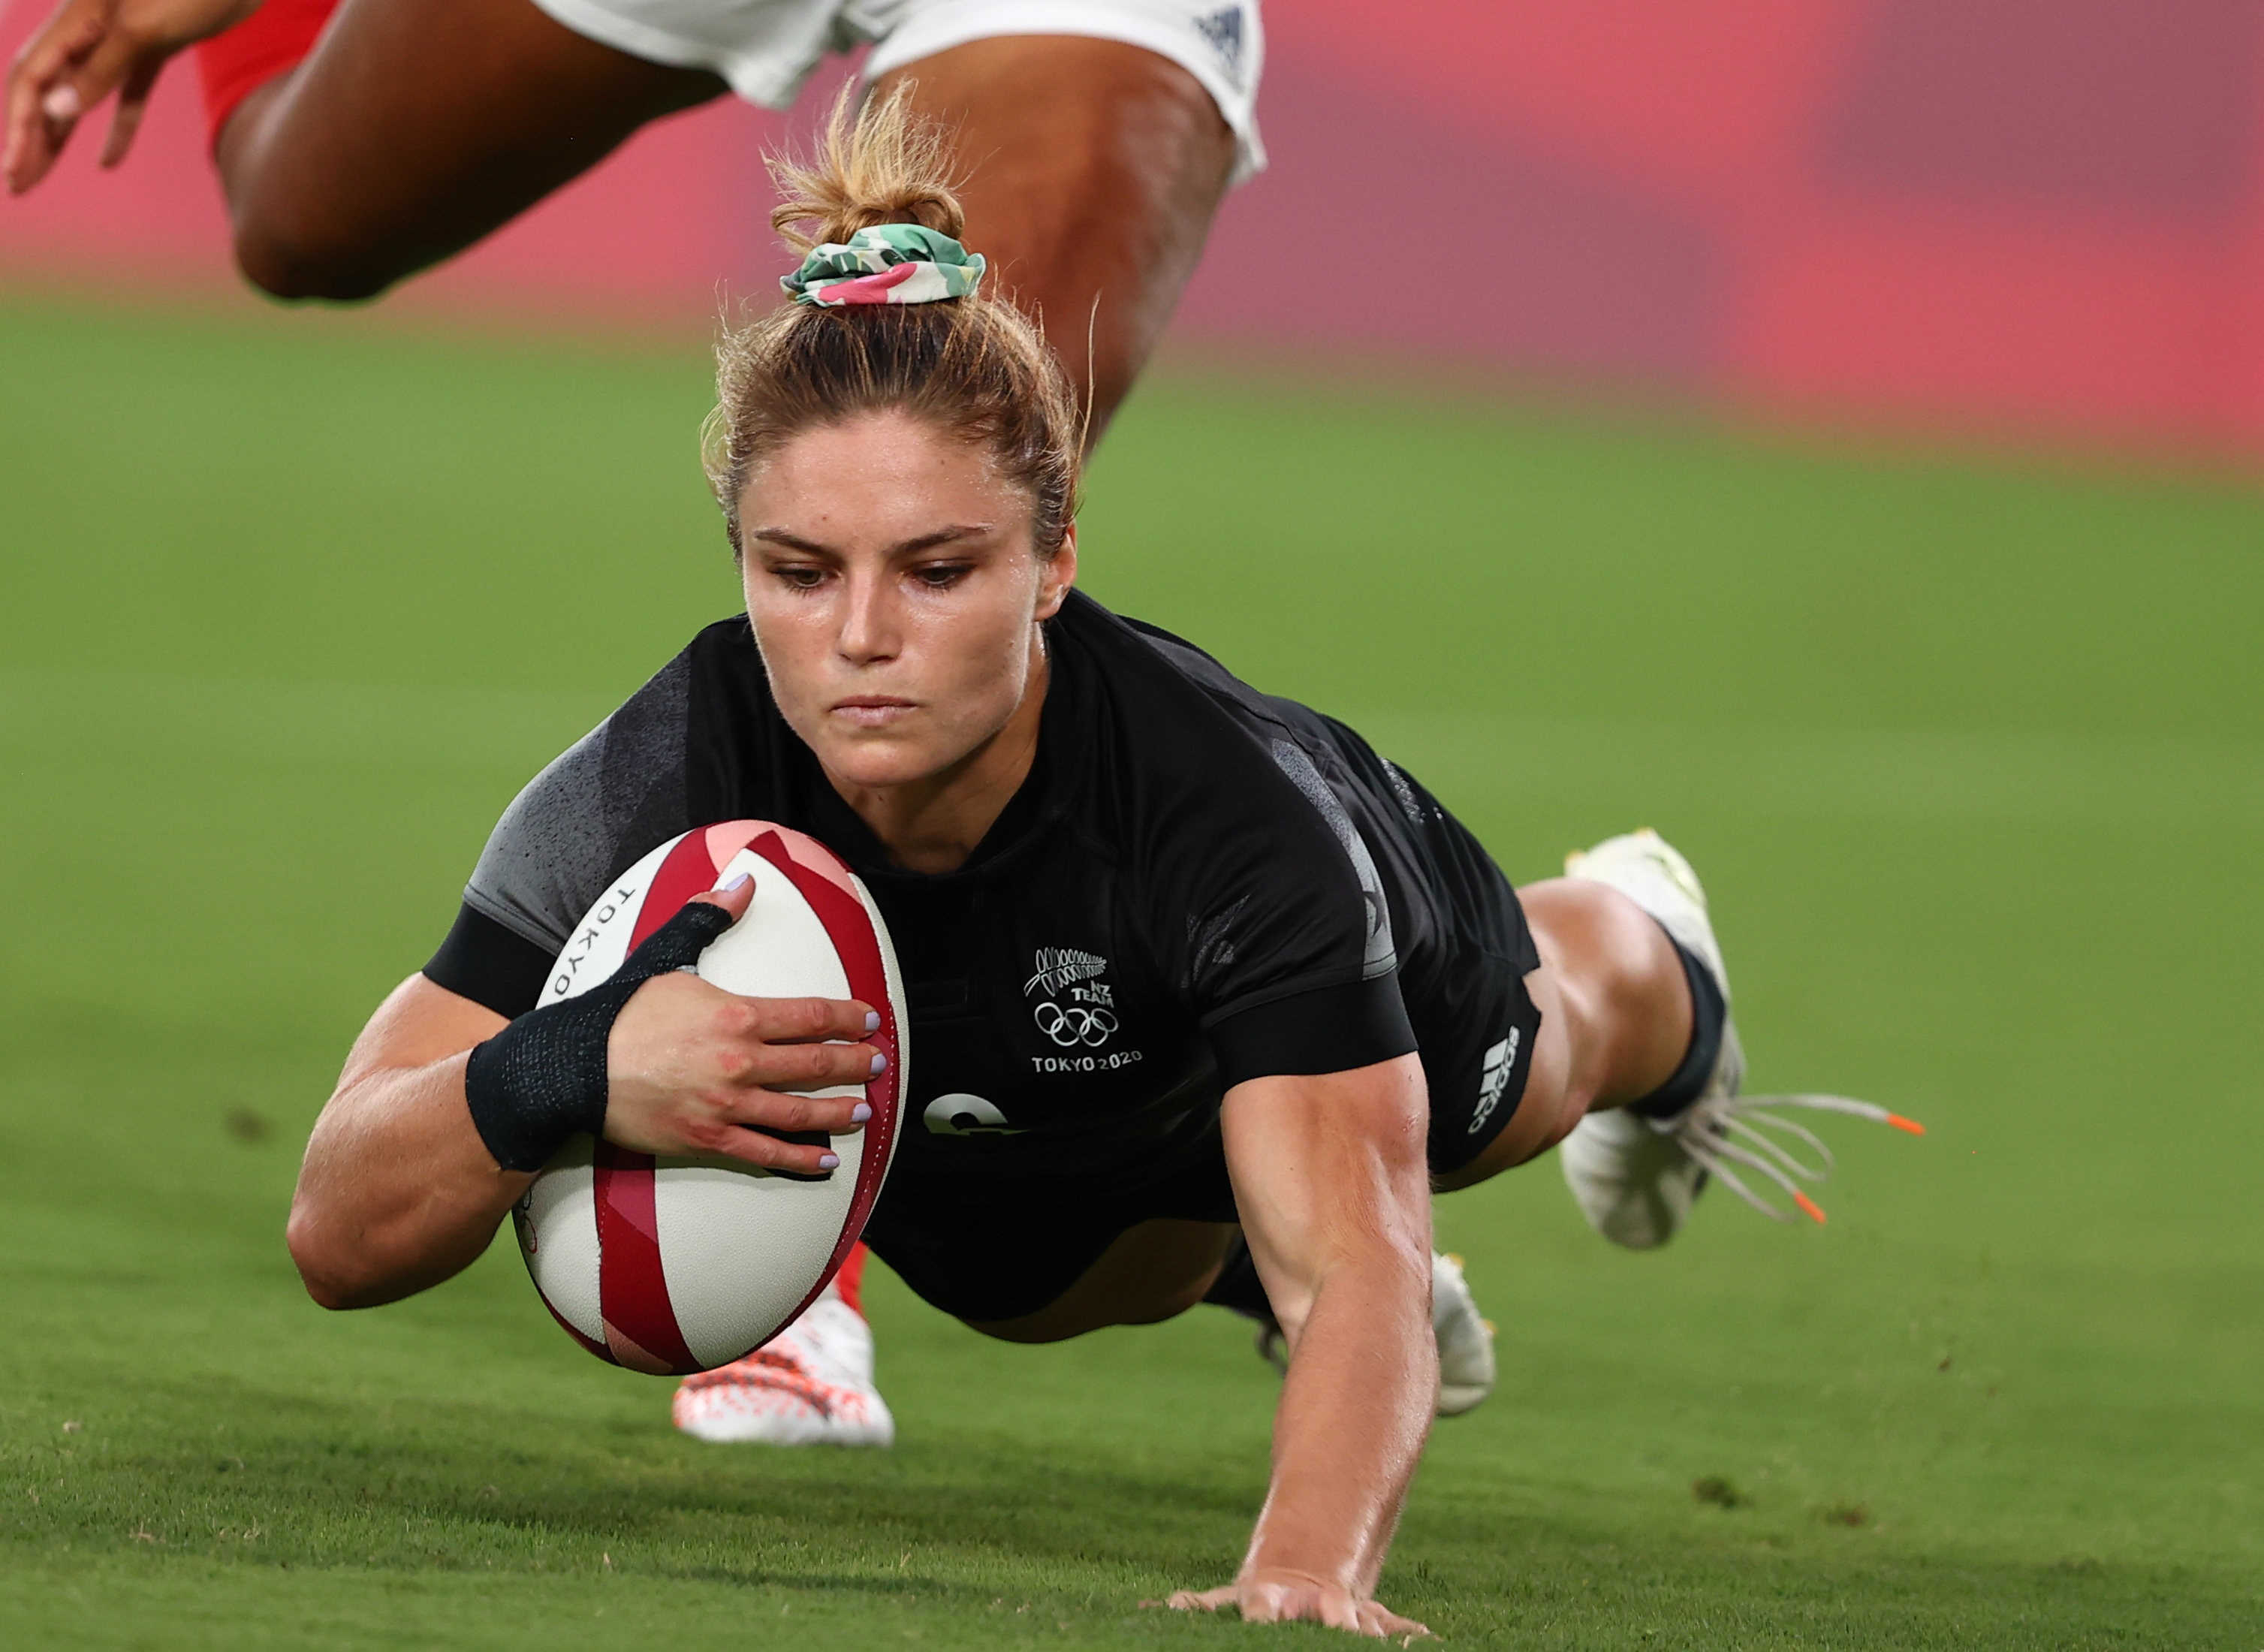 Tokyo 2020 Olympics - Rugby Sevens - Women - Pool A - New Zealand v Britain - Tokyo Stadium - Tokyo, Japan - July 29, 2021. Michaela Blyde of New Zealand scores a try. REUTERS/Siphiwe Sibeko